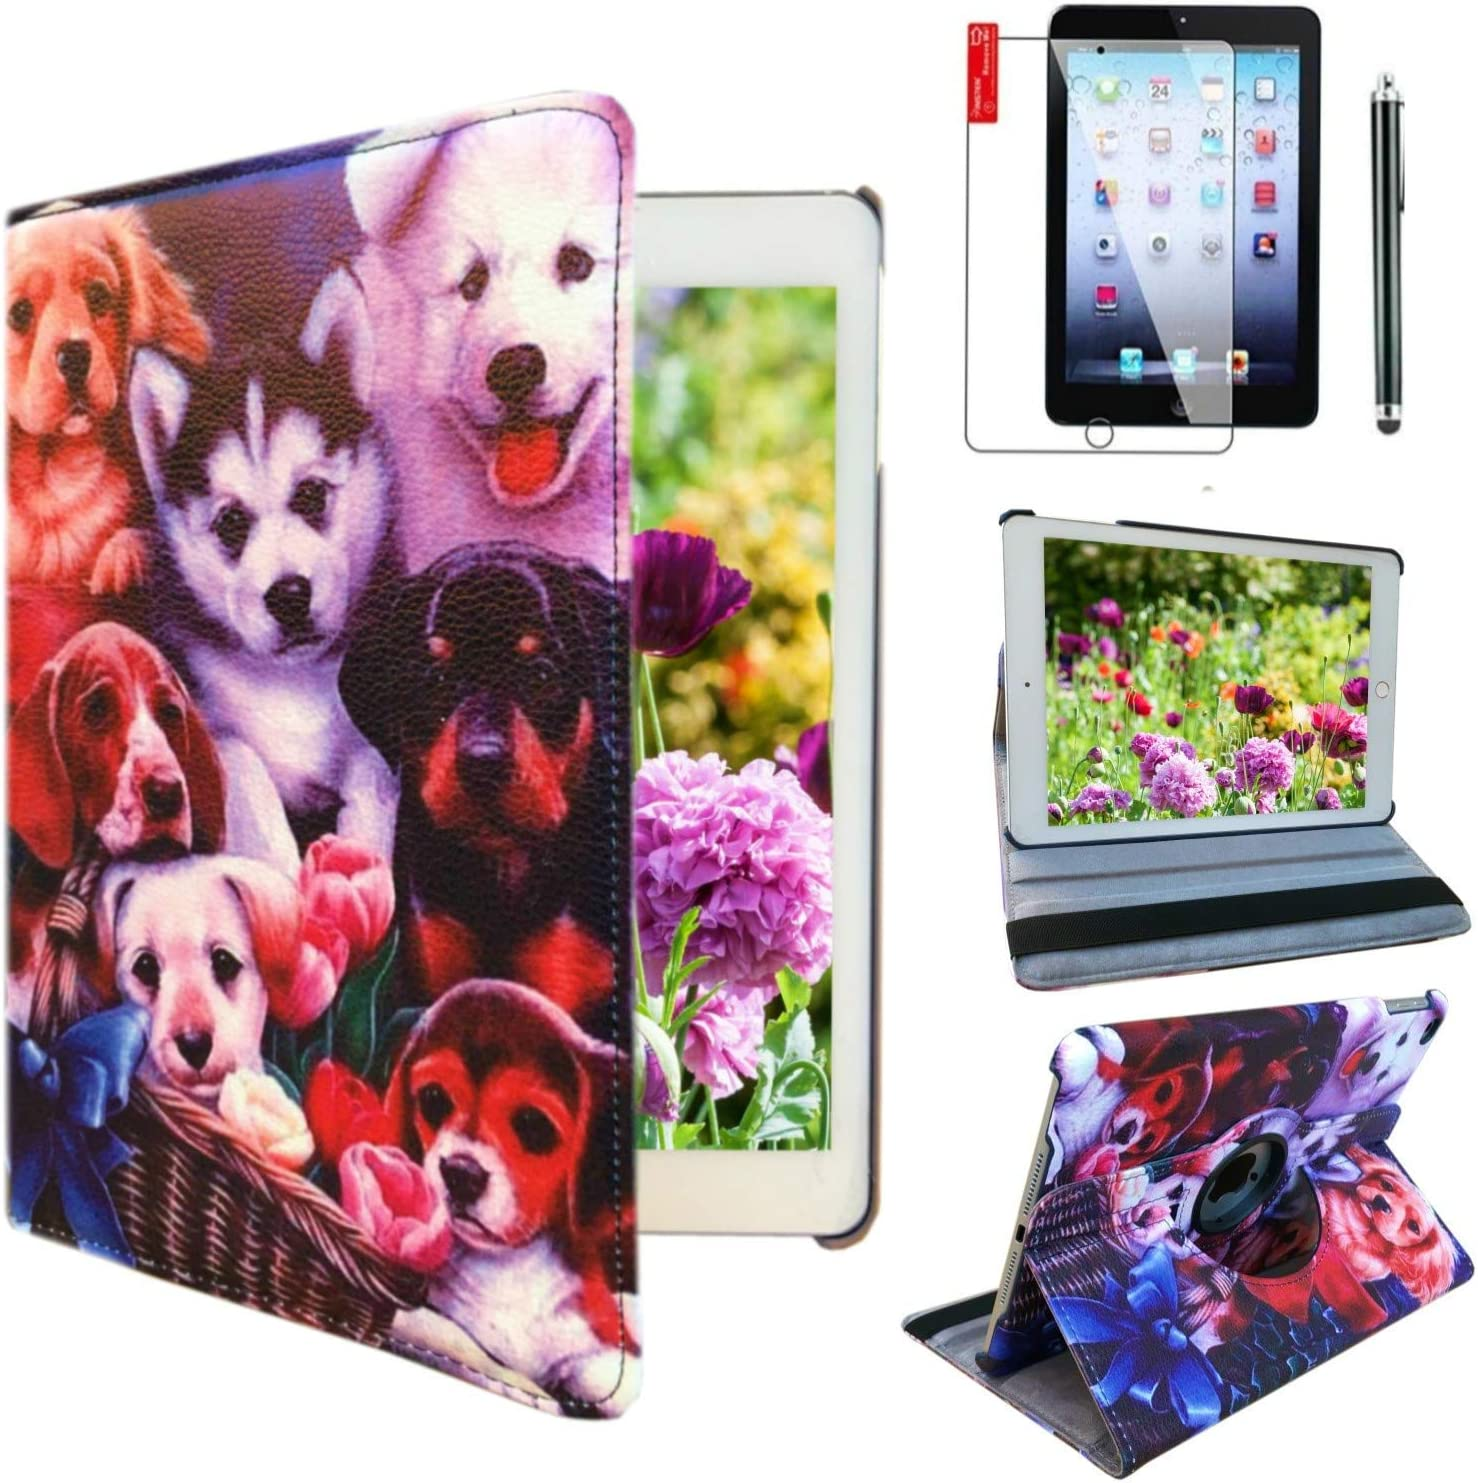 Ipad Case 360 Degrees Rotating Stand Leather Magnetic Smart Cover Case for Ipad 2/3 / 4 Generation Case with Bonus Screen Protector, Stylus and Cleaning Cloth (Dog Design case)